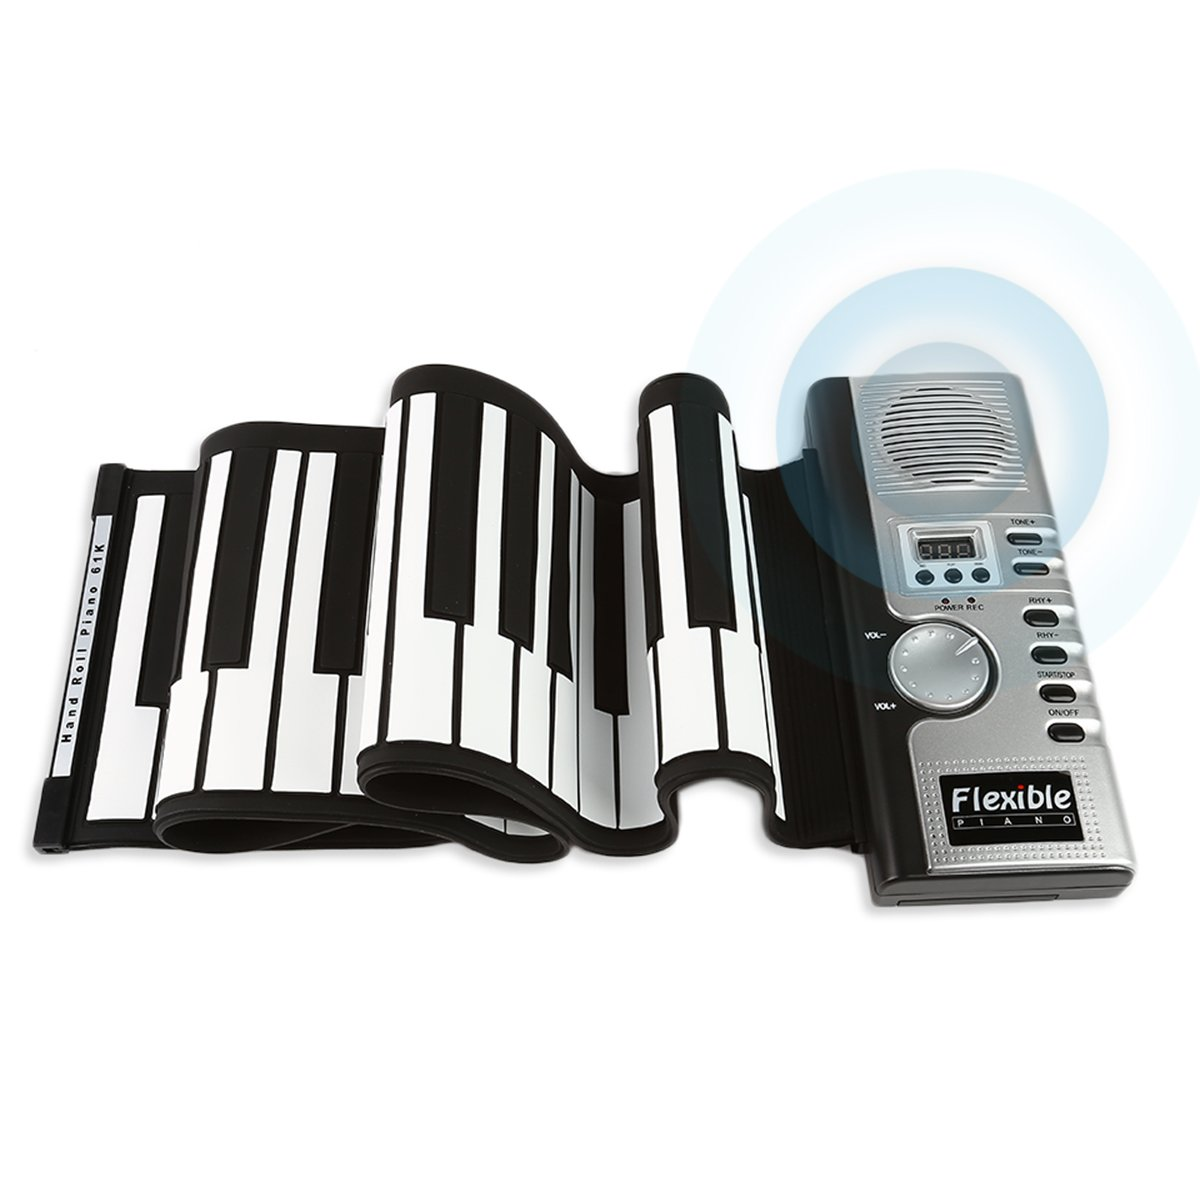 JouerNow RUP001 61 Thickened-Keys Roll Up Piano, Multifunctional Electronic Digital Synthesizer, Battery-Operated, with Built-in Speaker/ Headphone Output 27-013-401-ECBU